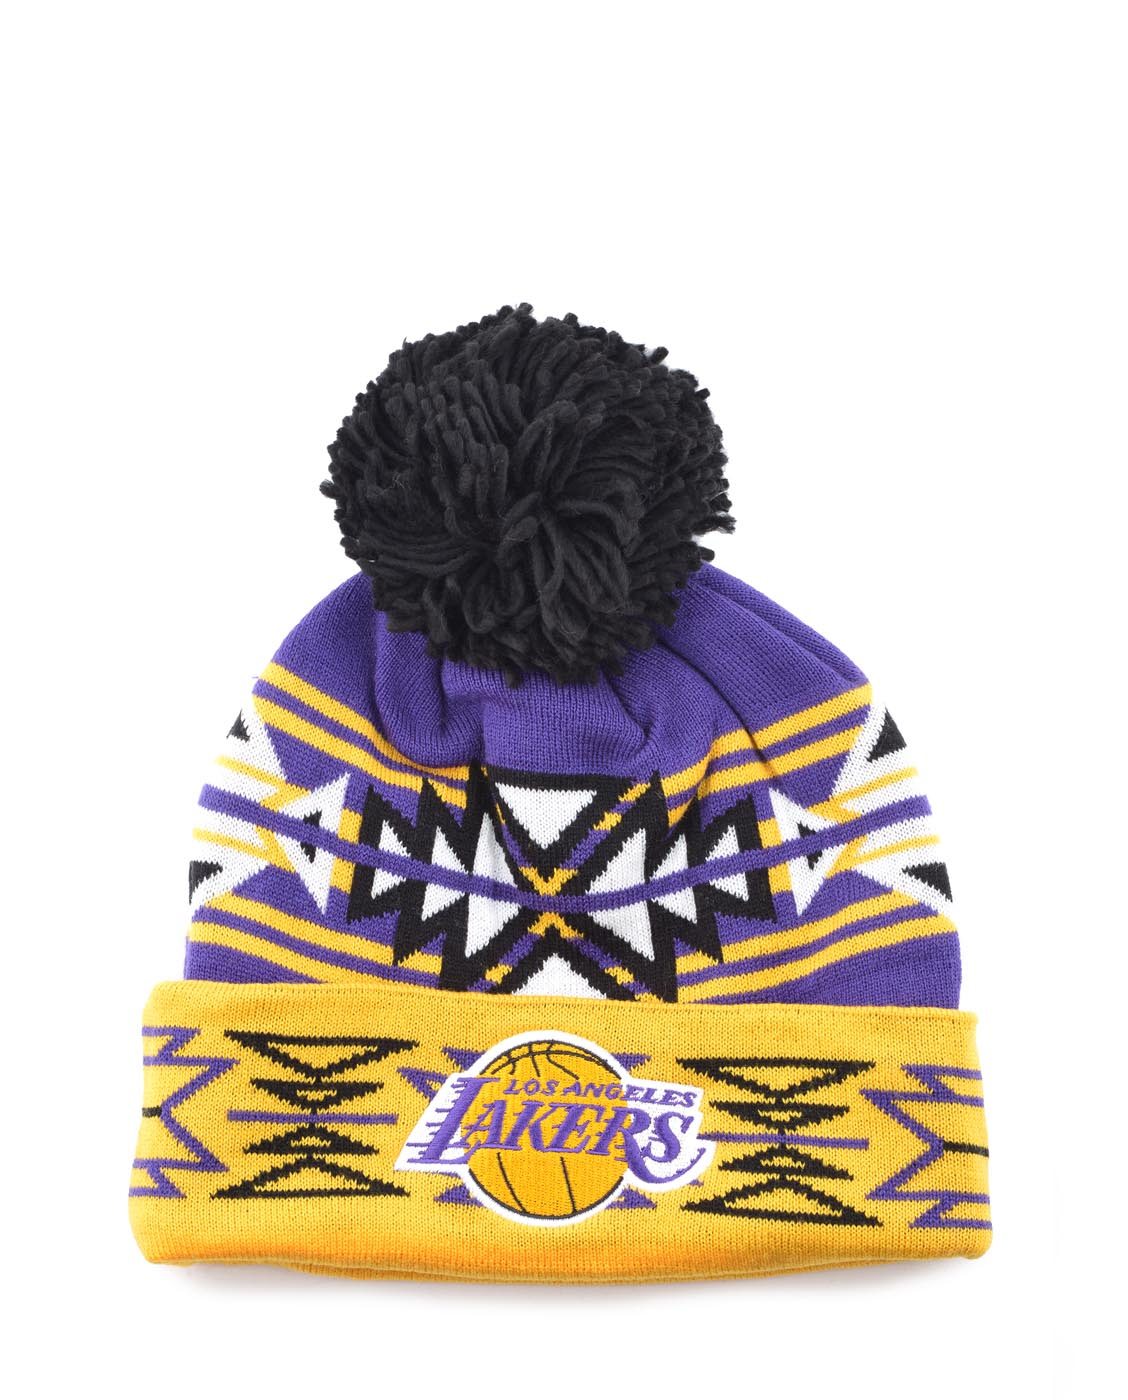 Details about NEW NBA TEAM LOS ANGELES LAKERS BEANIE 261a973866c7